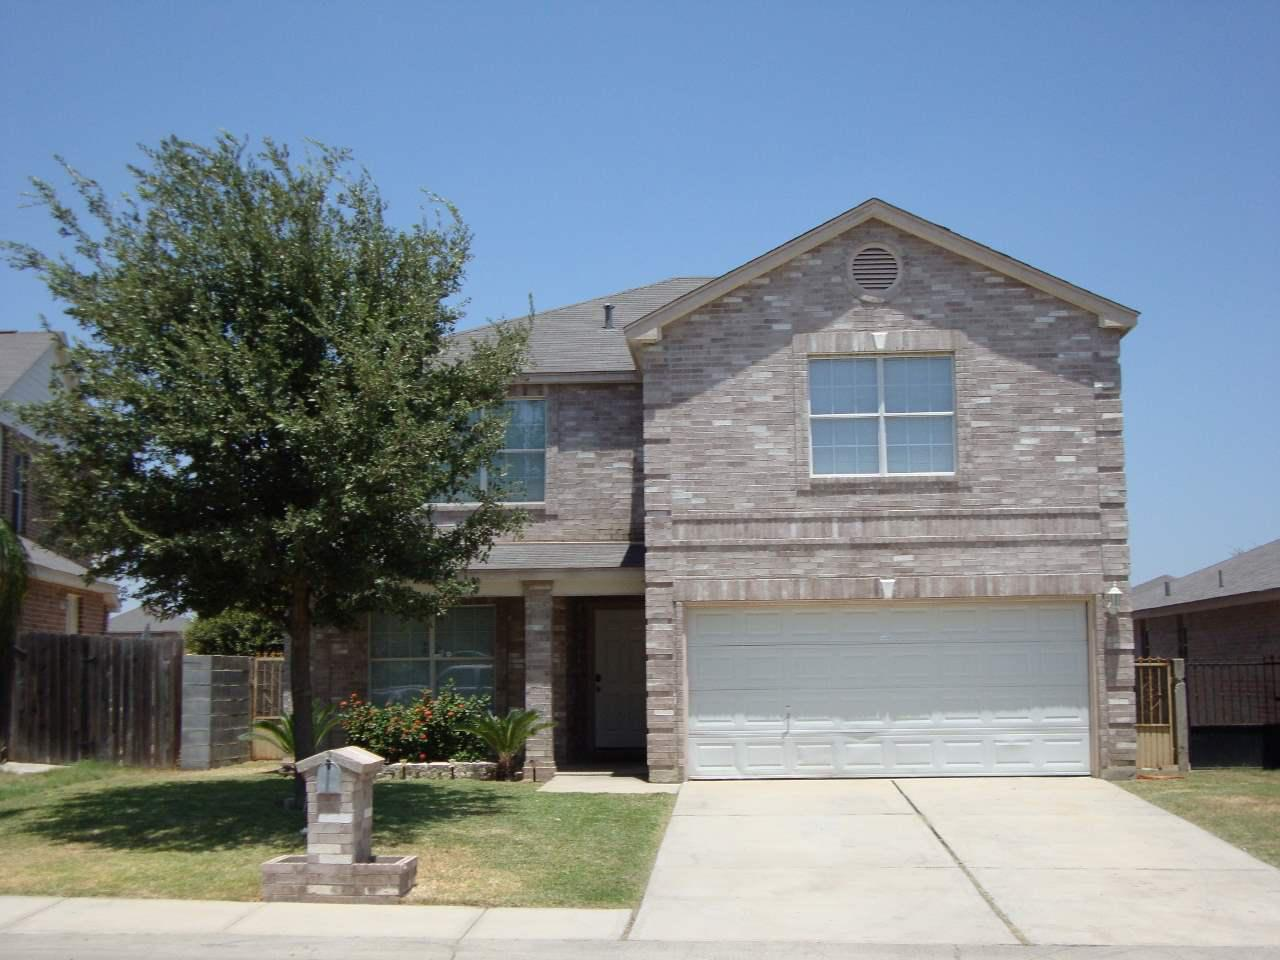 Listing 2432 Old Spanish Trl Laredo Tx Mls 20152372: home builders in laredo tx